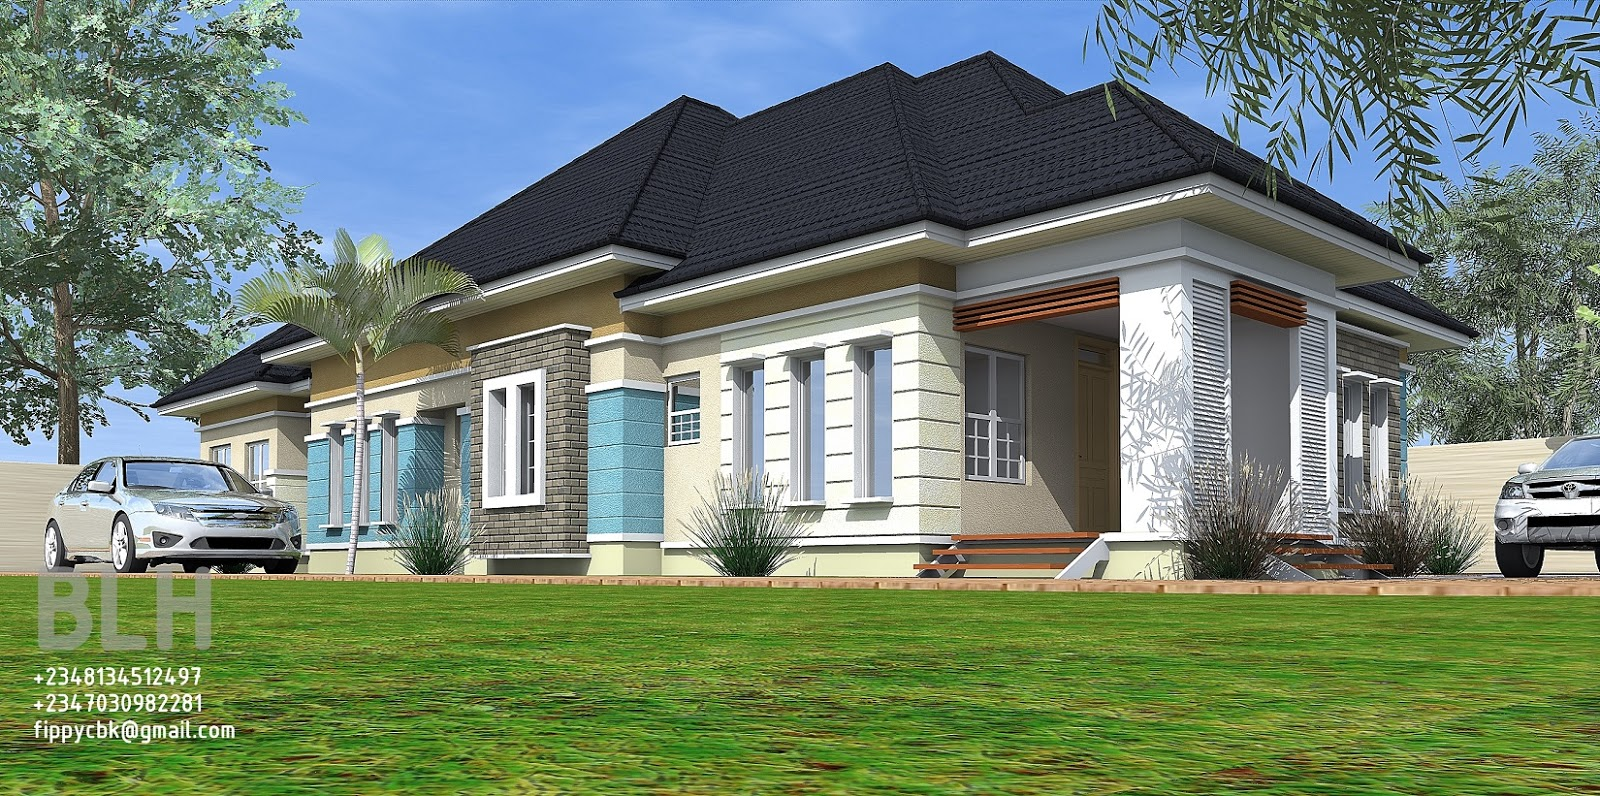 Architectural designs by blacklakehouse 4 bedroom bungalow for Four bedroom bungalow